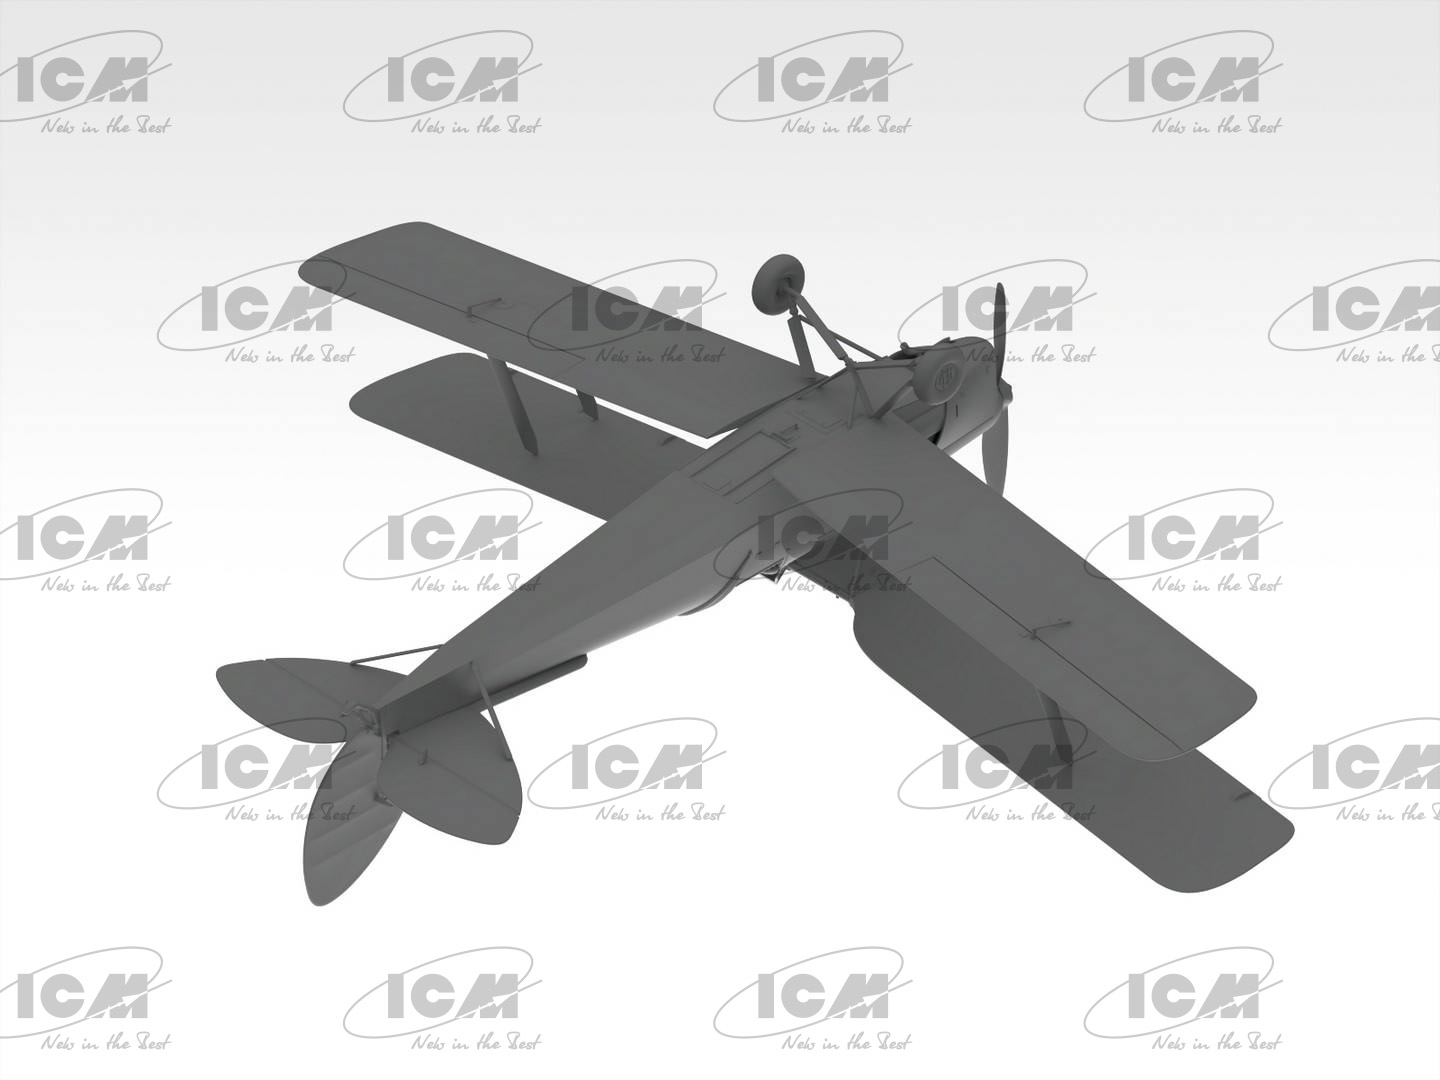 1606202760_de-havilland-dh82a-render-3-ryerryiryos